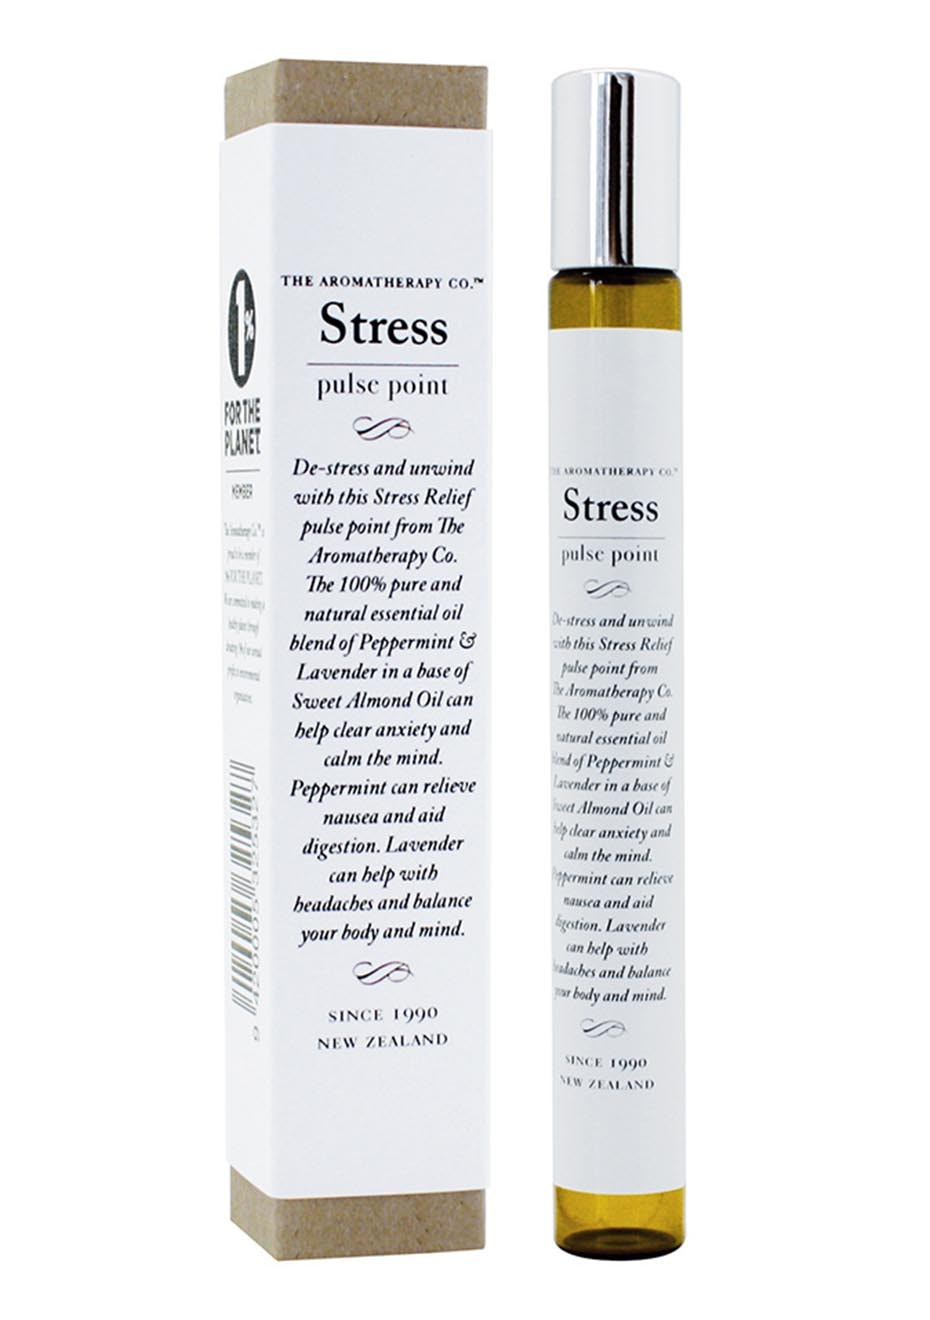 Stress Pulse Point - 15ml - Gifts For Her - Onceit  sc 1 st  Onceit & The Aromatherapy Co. - Stress Pulse Point - 15ml - Gifts For Her ...